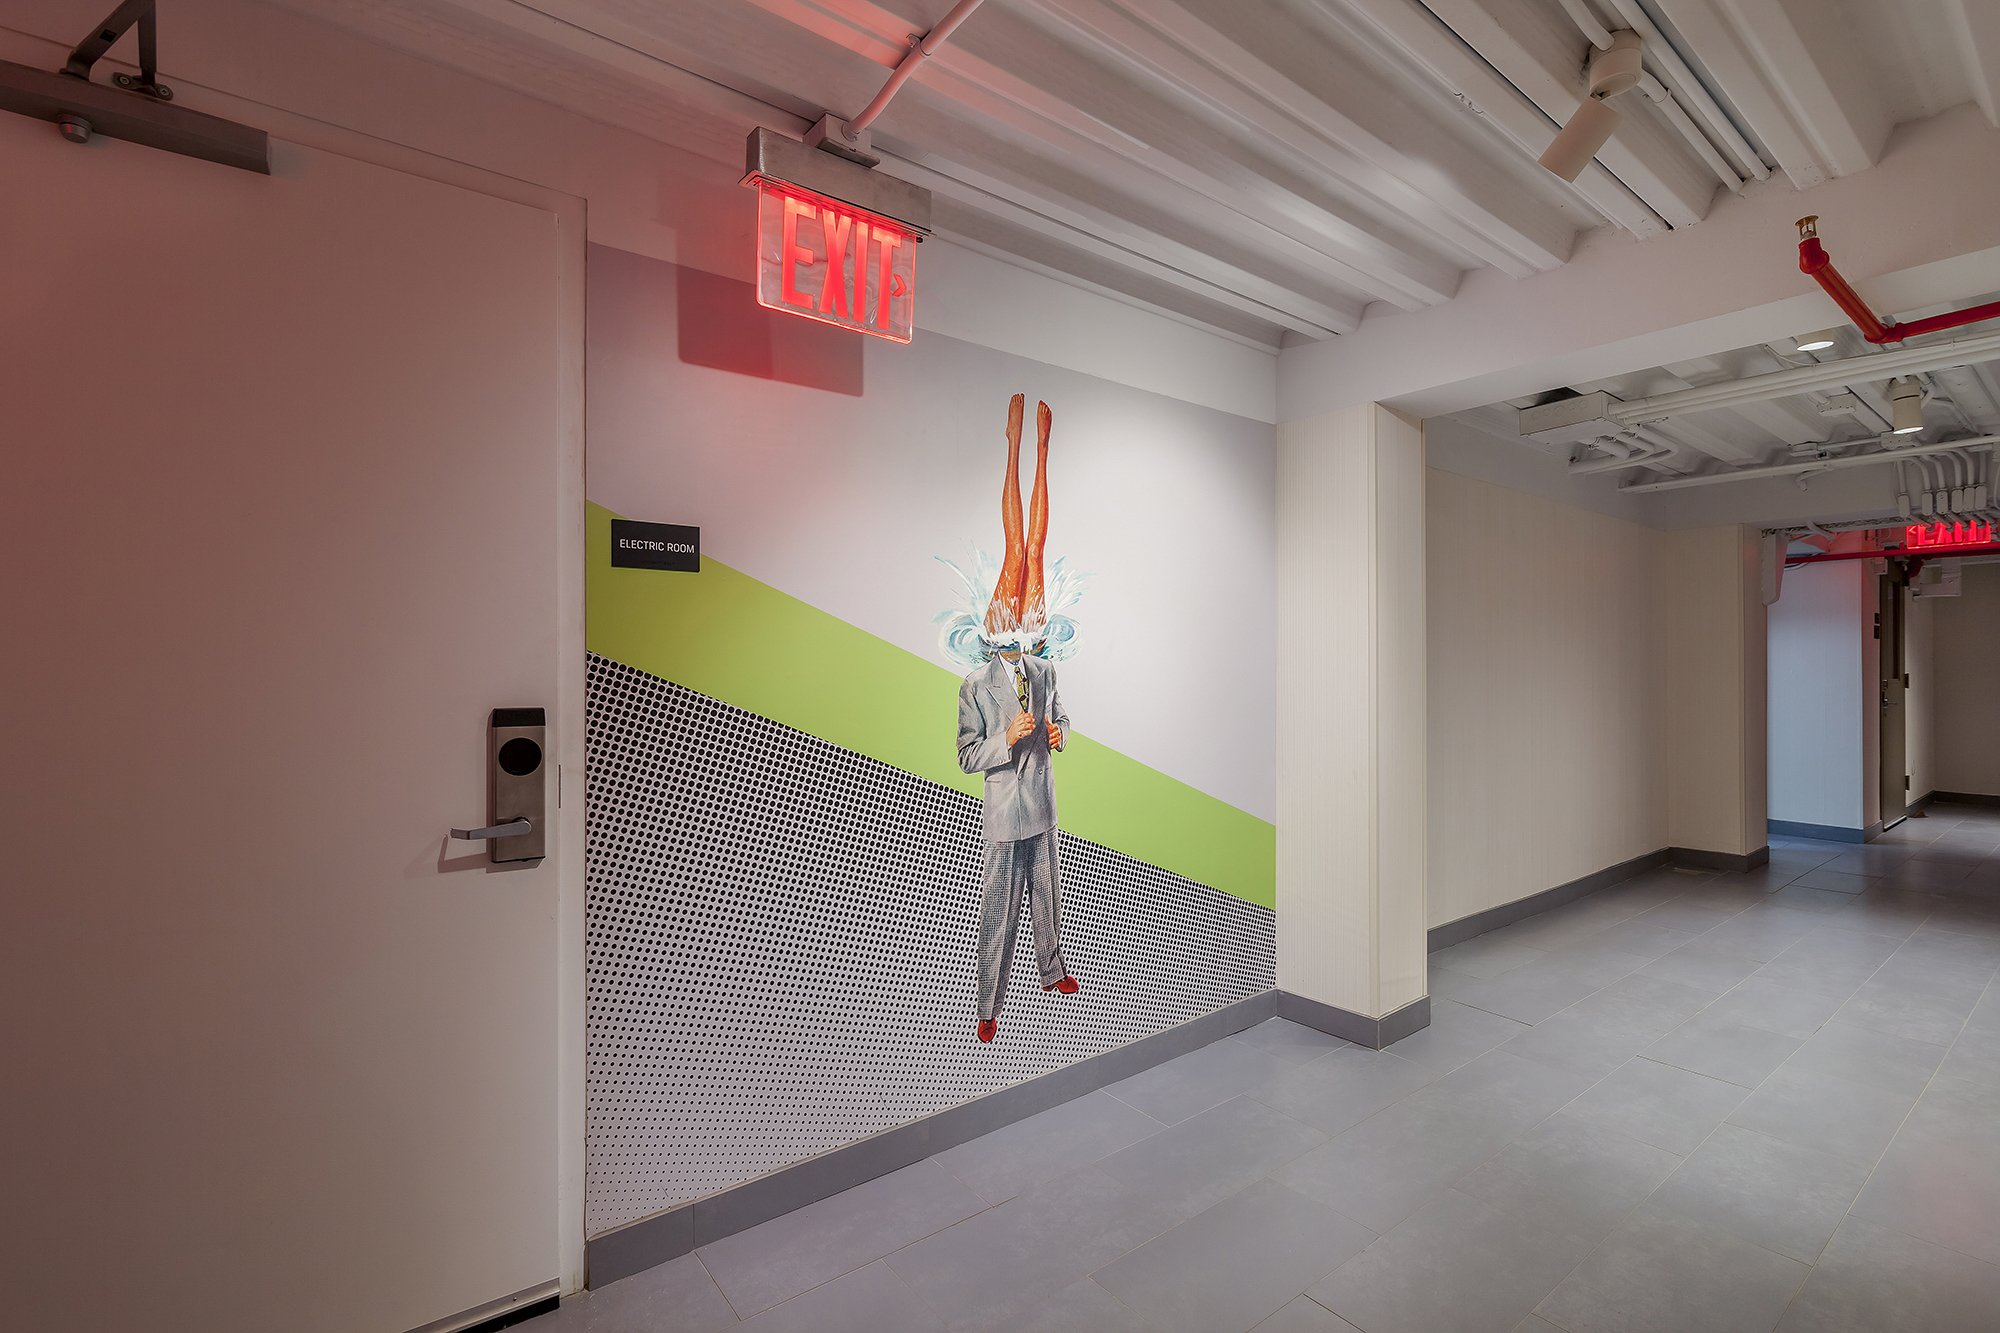 """These works fill the space with an energy and excitement while keeping the fitness room company."""